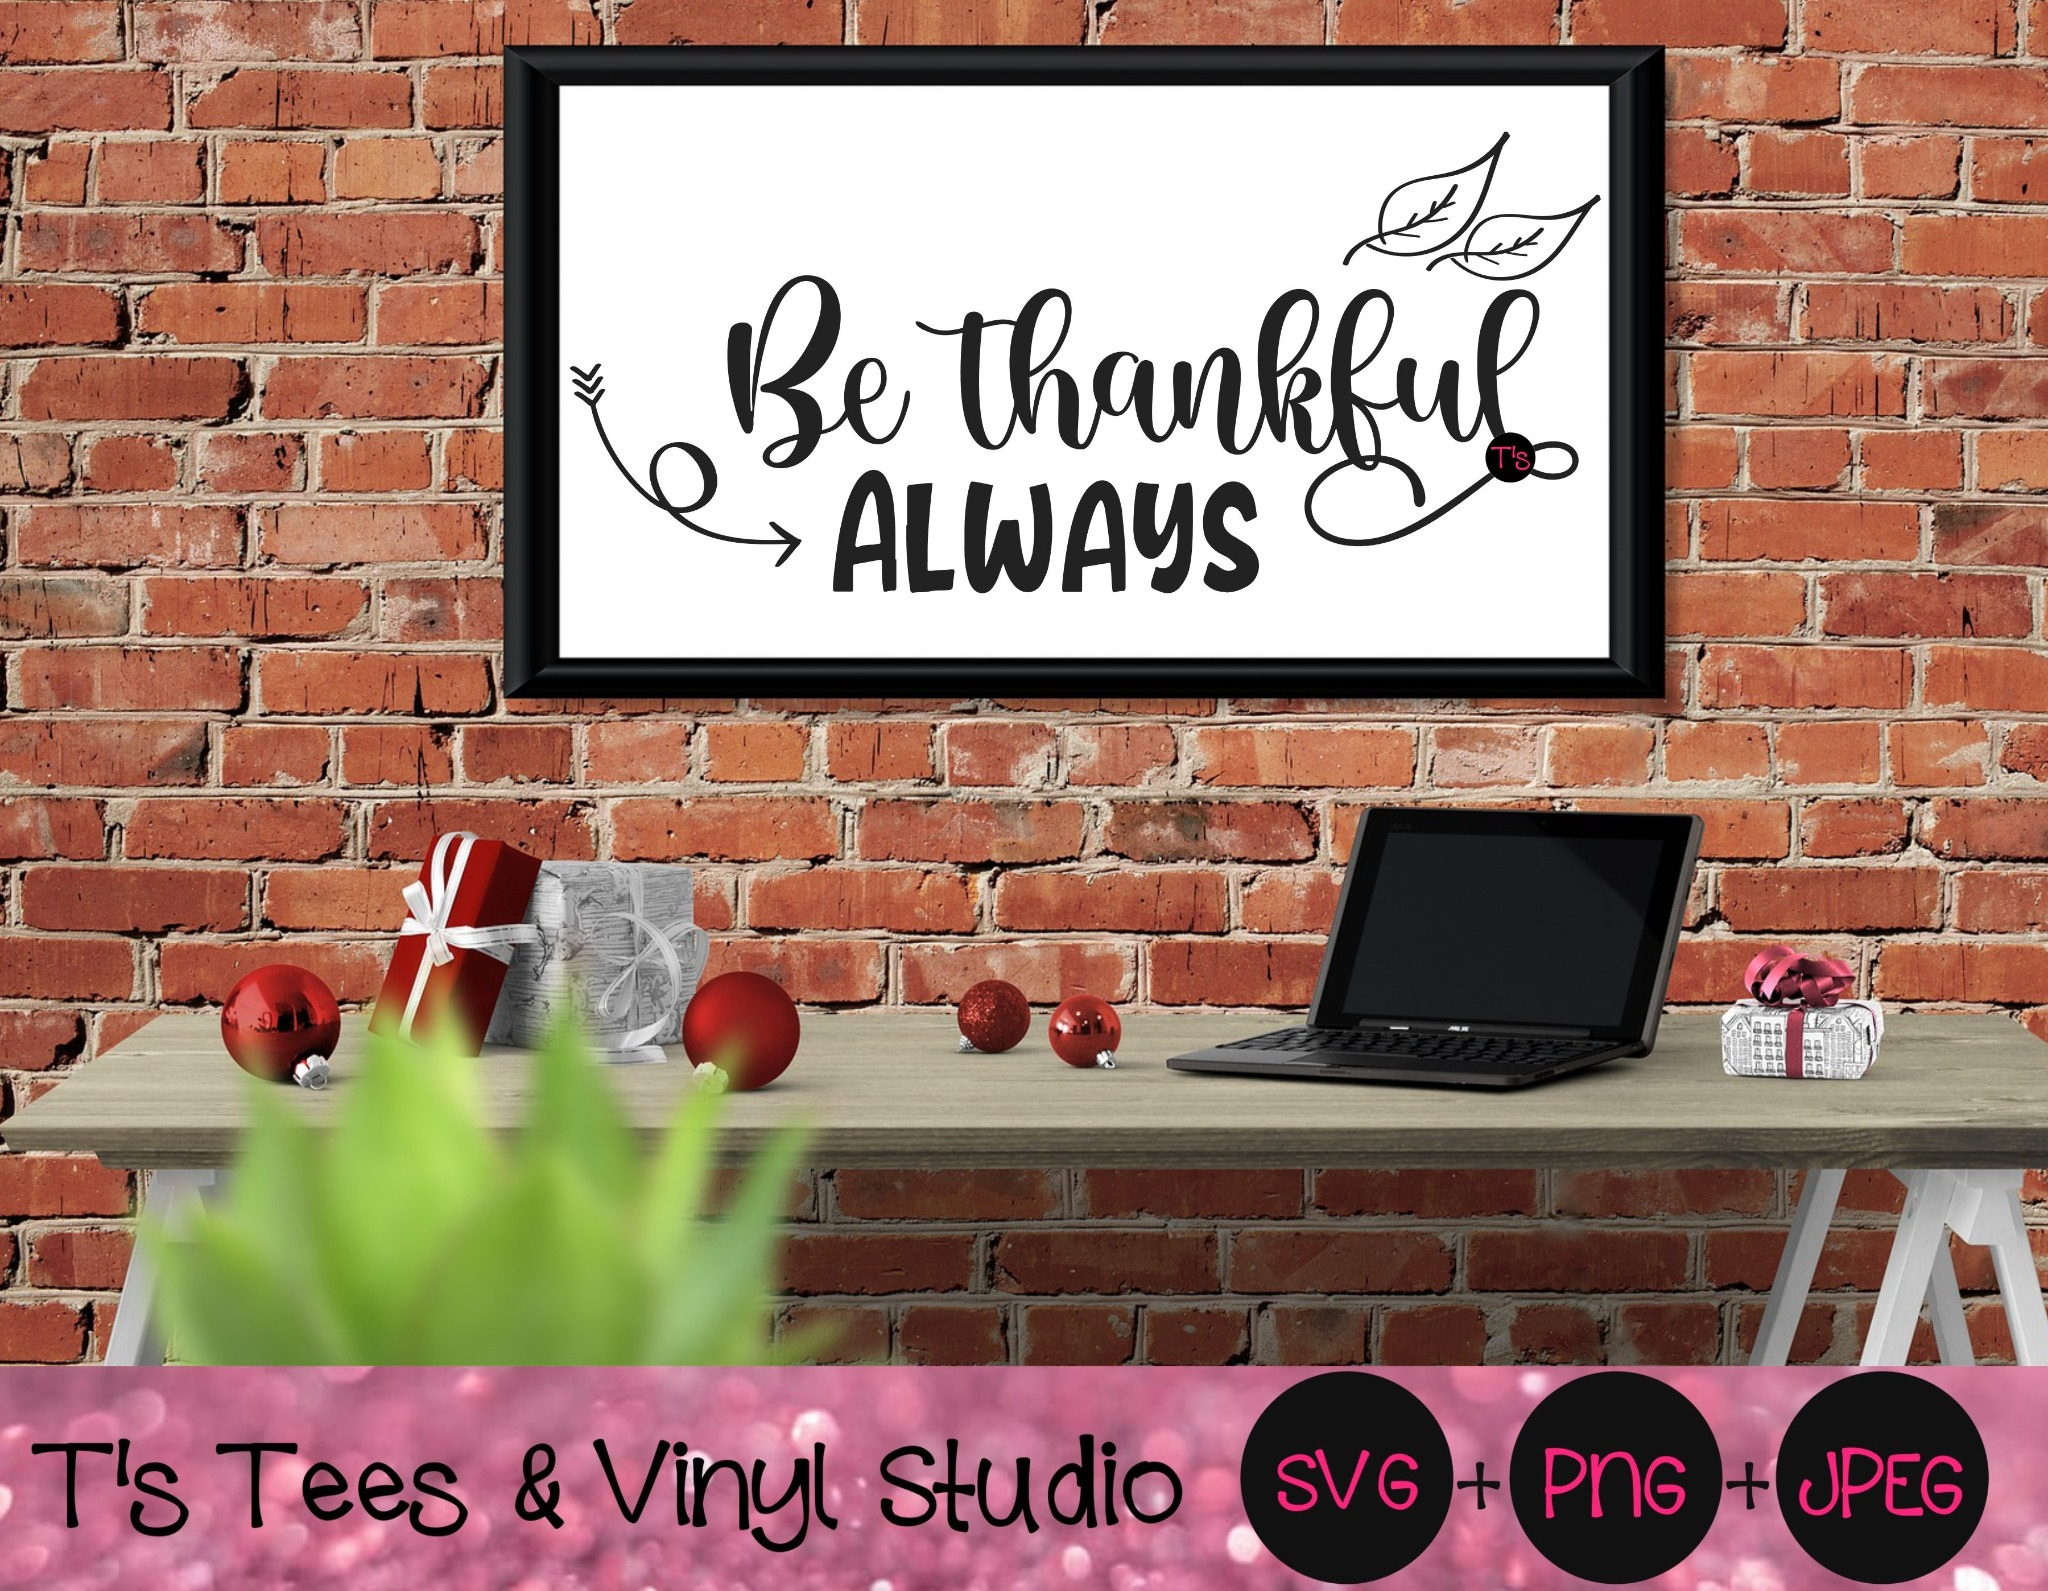 Be Thankful Always Svg, Thanksgiving, Give Thanks, Thankful, Grateful, Blessed Png, Family, Cut File